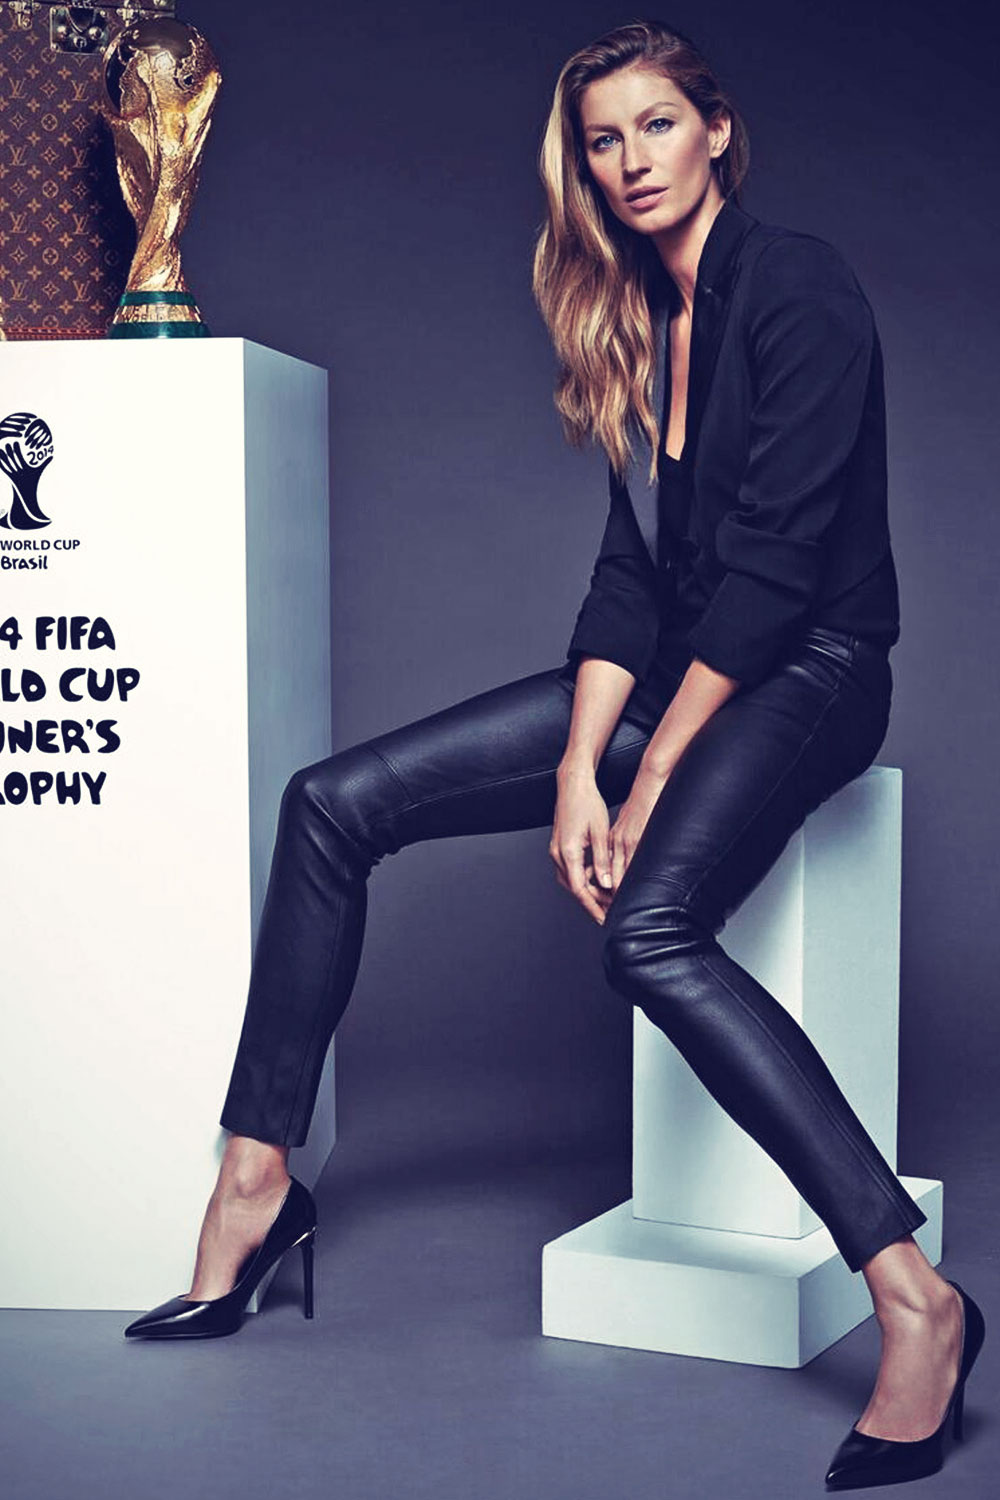 Gisele Bundchen presents Louis Vuitton FIFA World Cup 2014 case